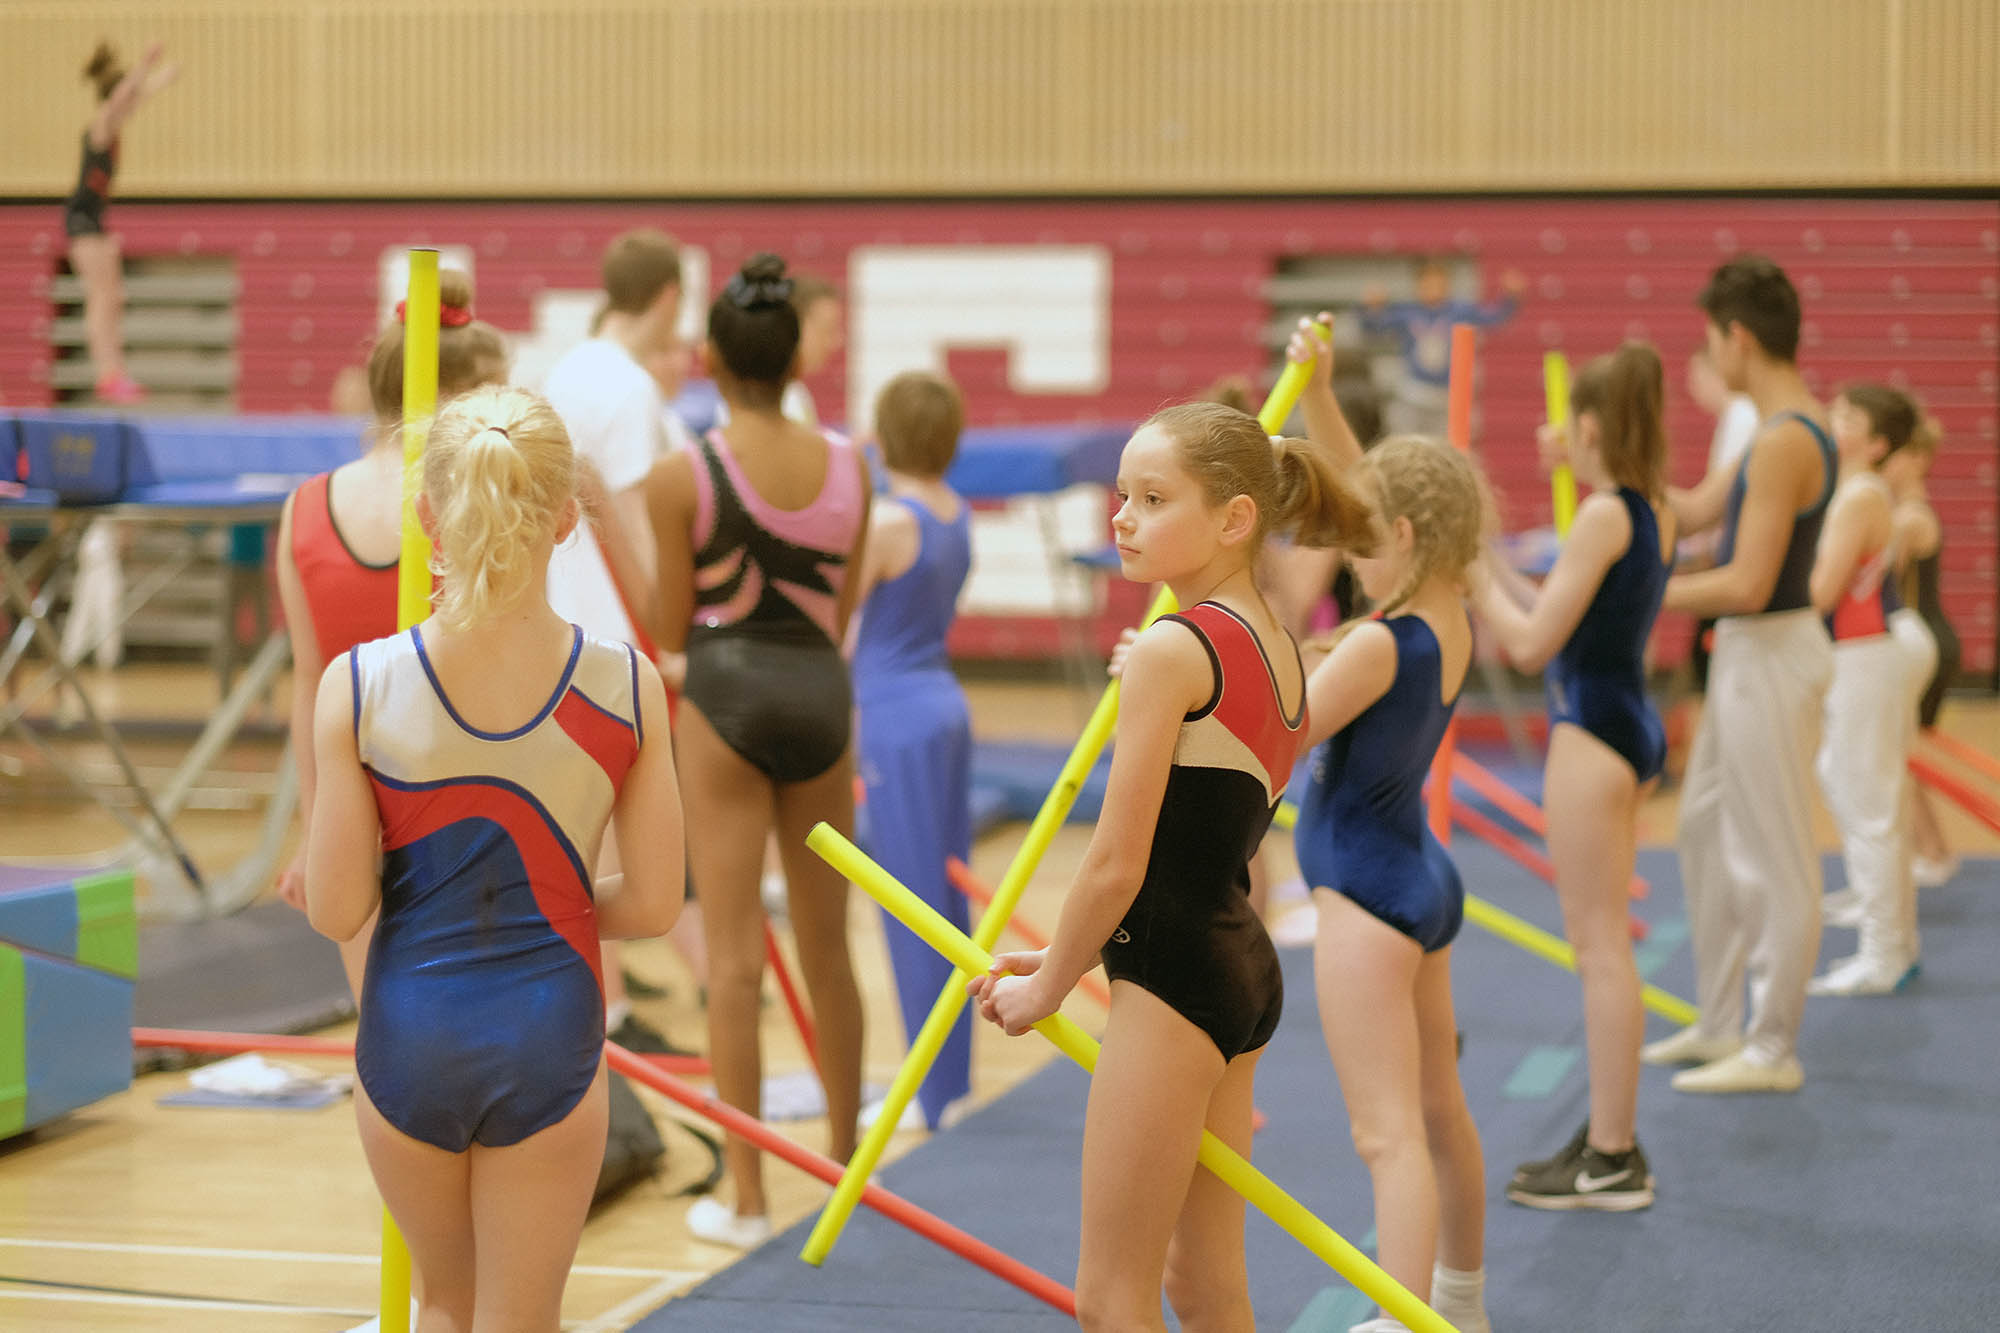 Always learning at Kingston Trampoline Academy